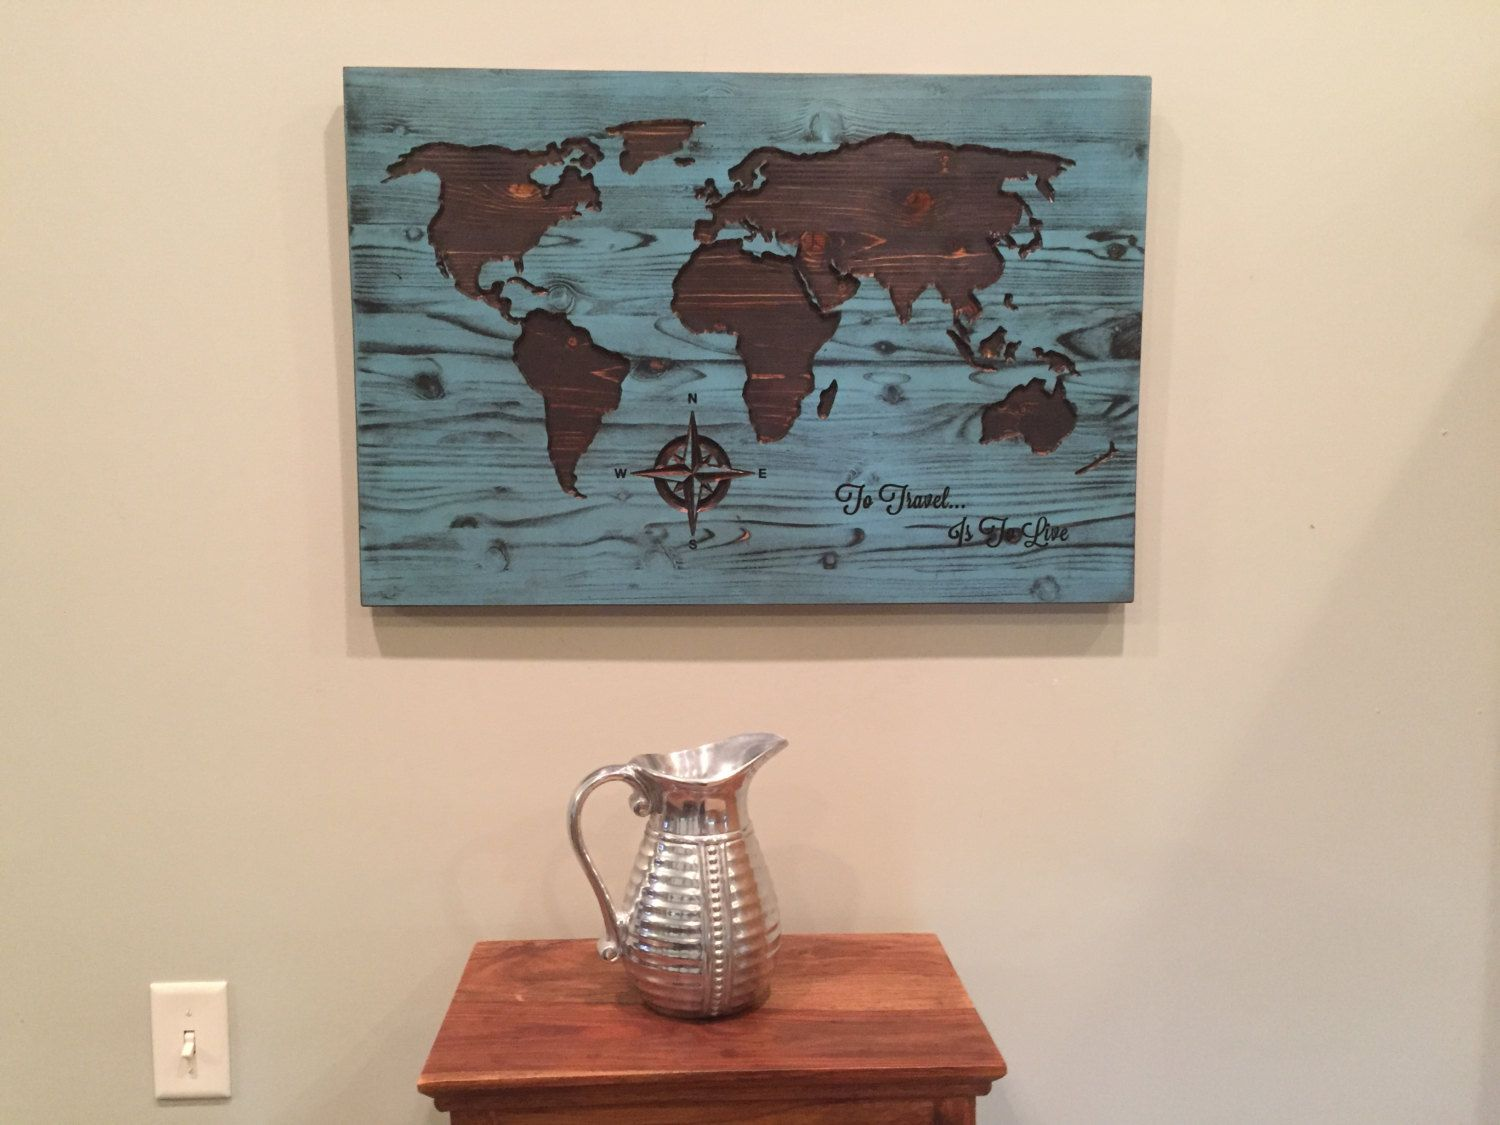 Carved world map wall art world map home decor world map decal carved world map wall art world map home decor world map decal world gumiabroncs Choice Image